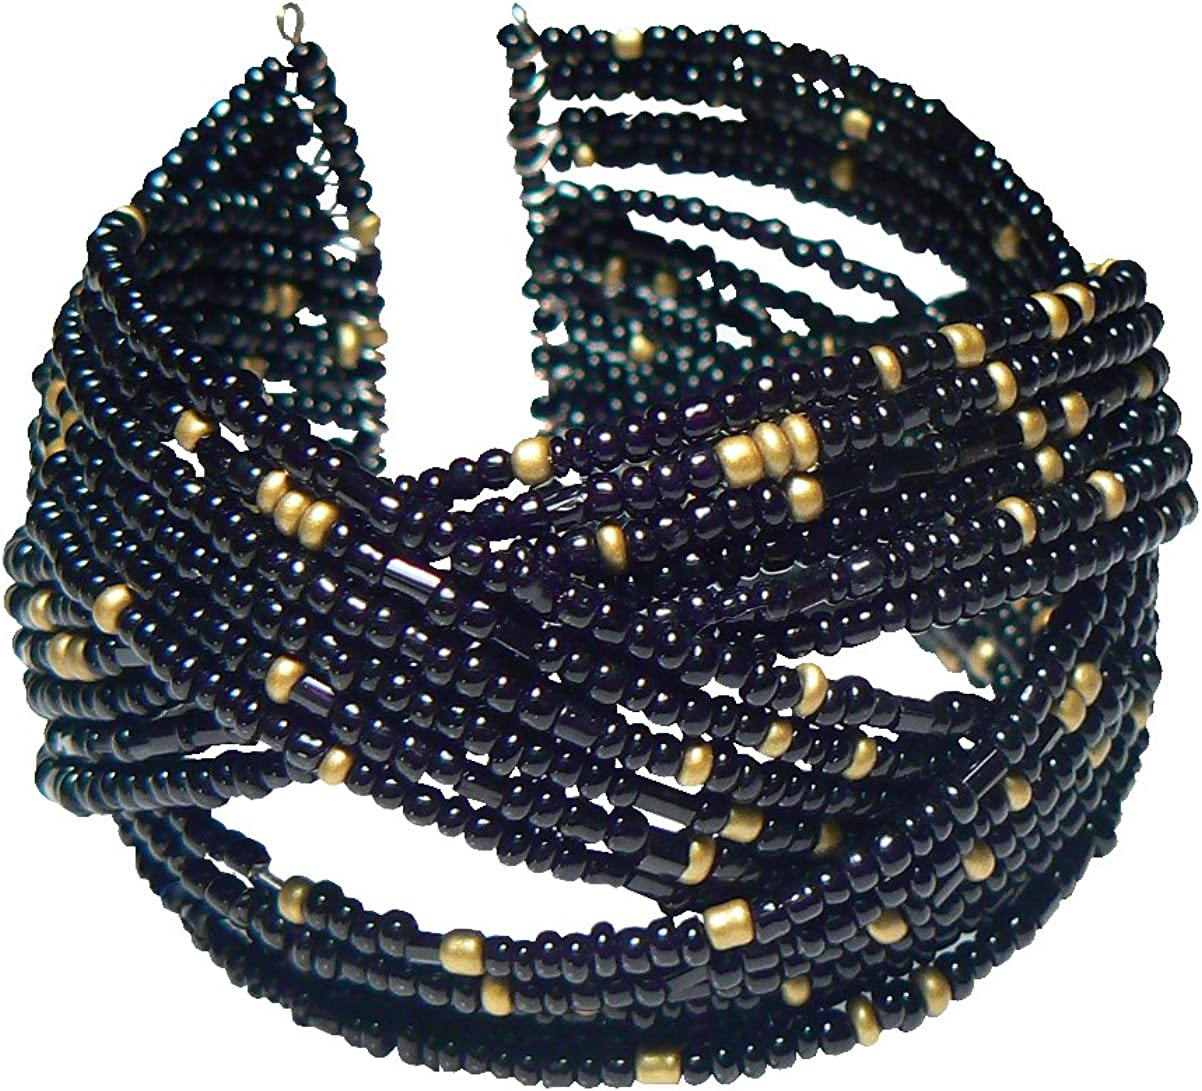 Wide Black and Matte Gold-Tone Braided Seed Bead Cuff Bracelet 1.5 Inches